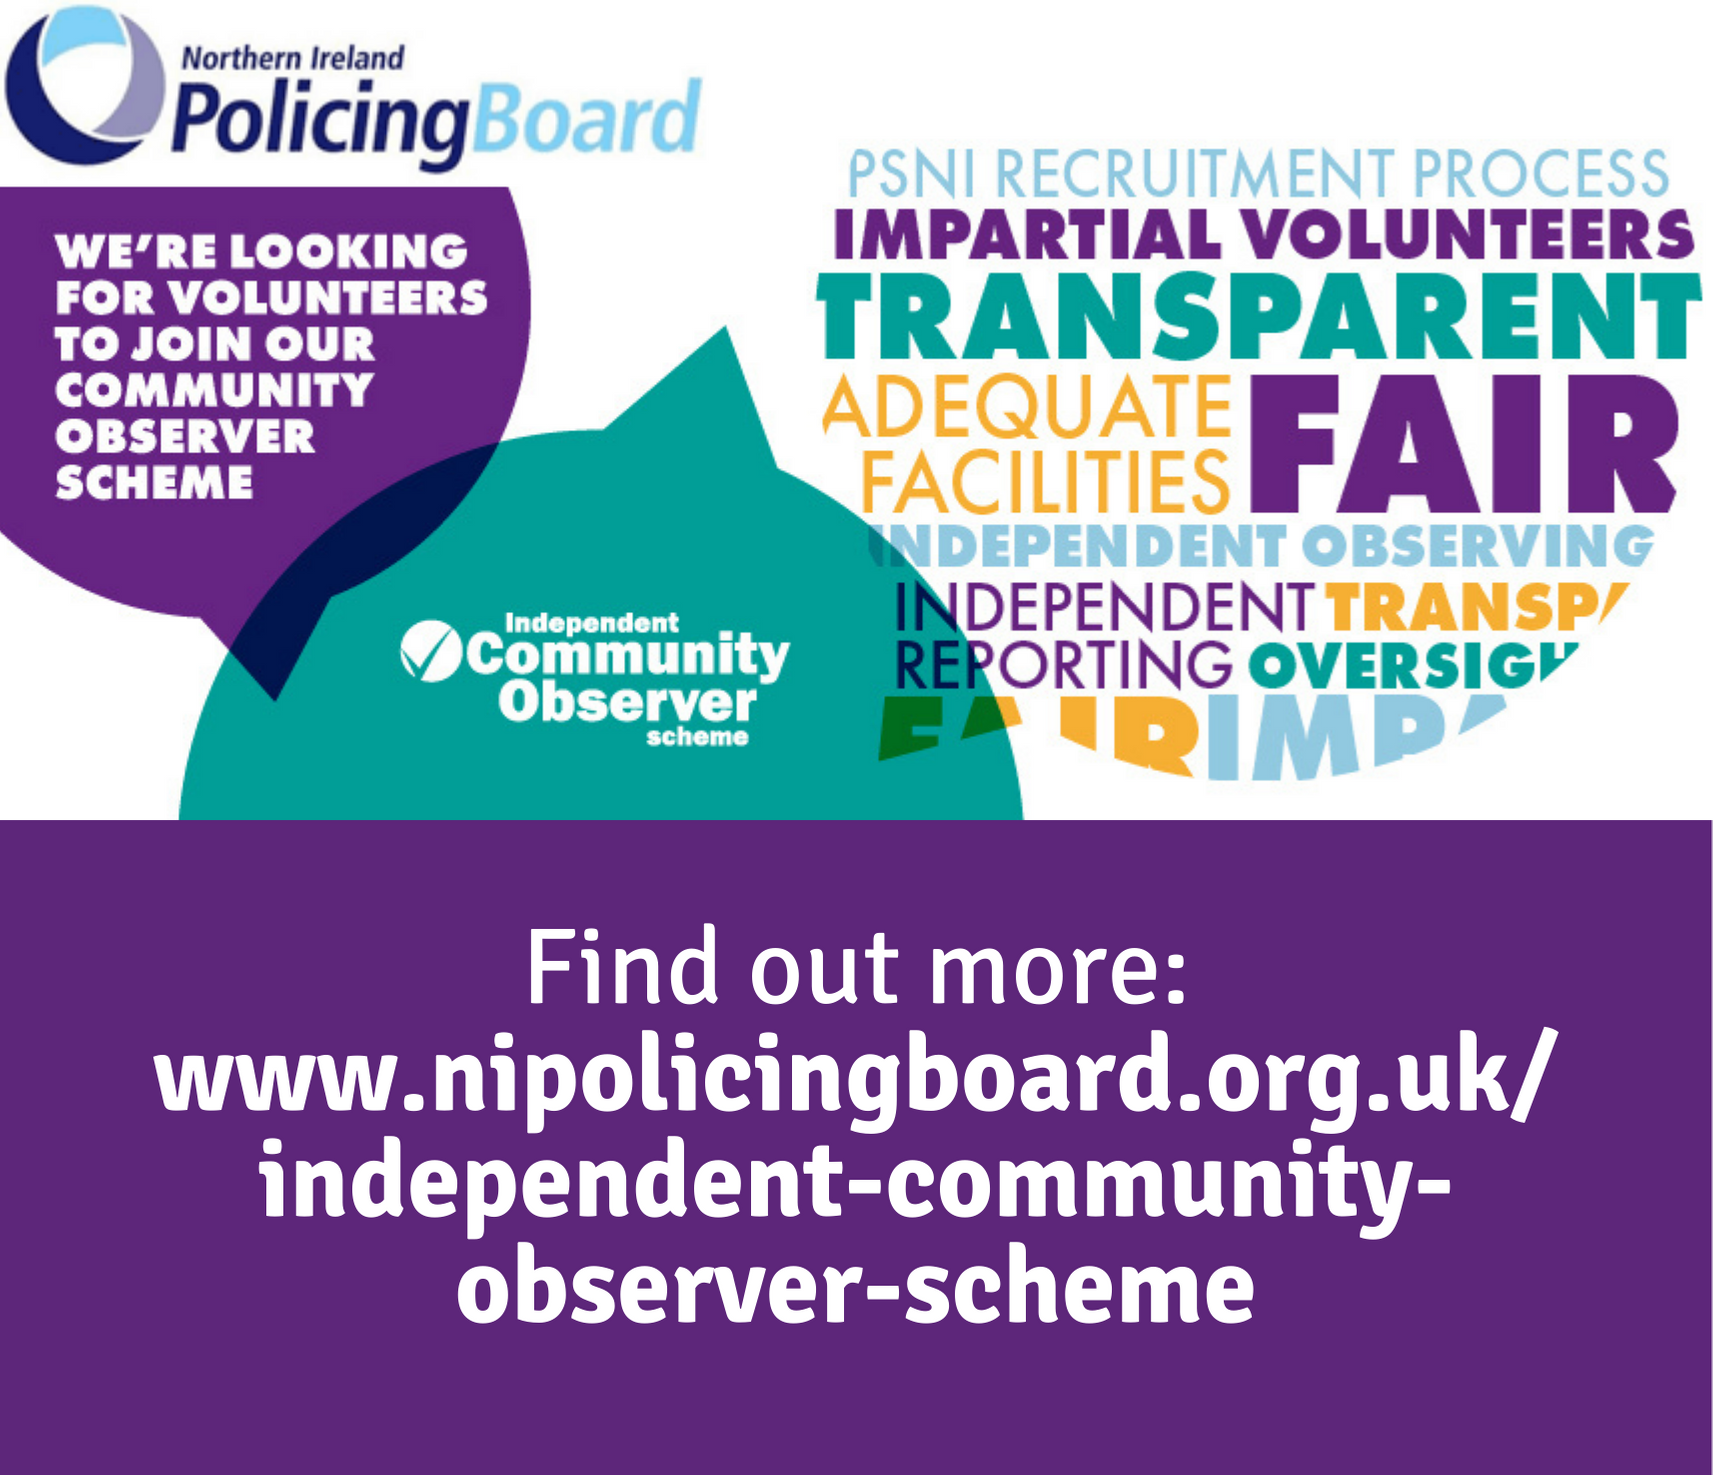 Independent Community Observers